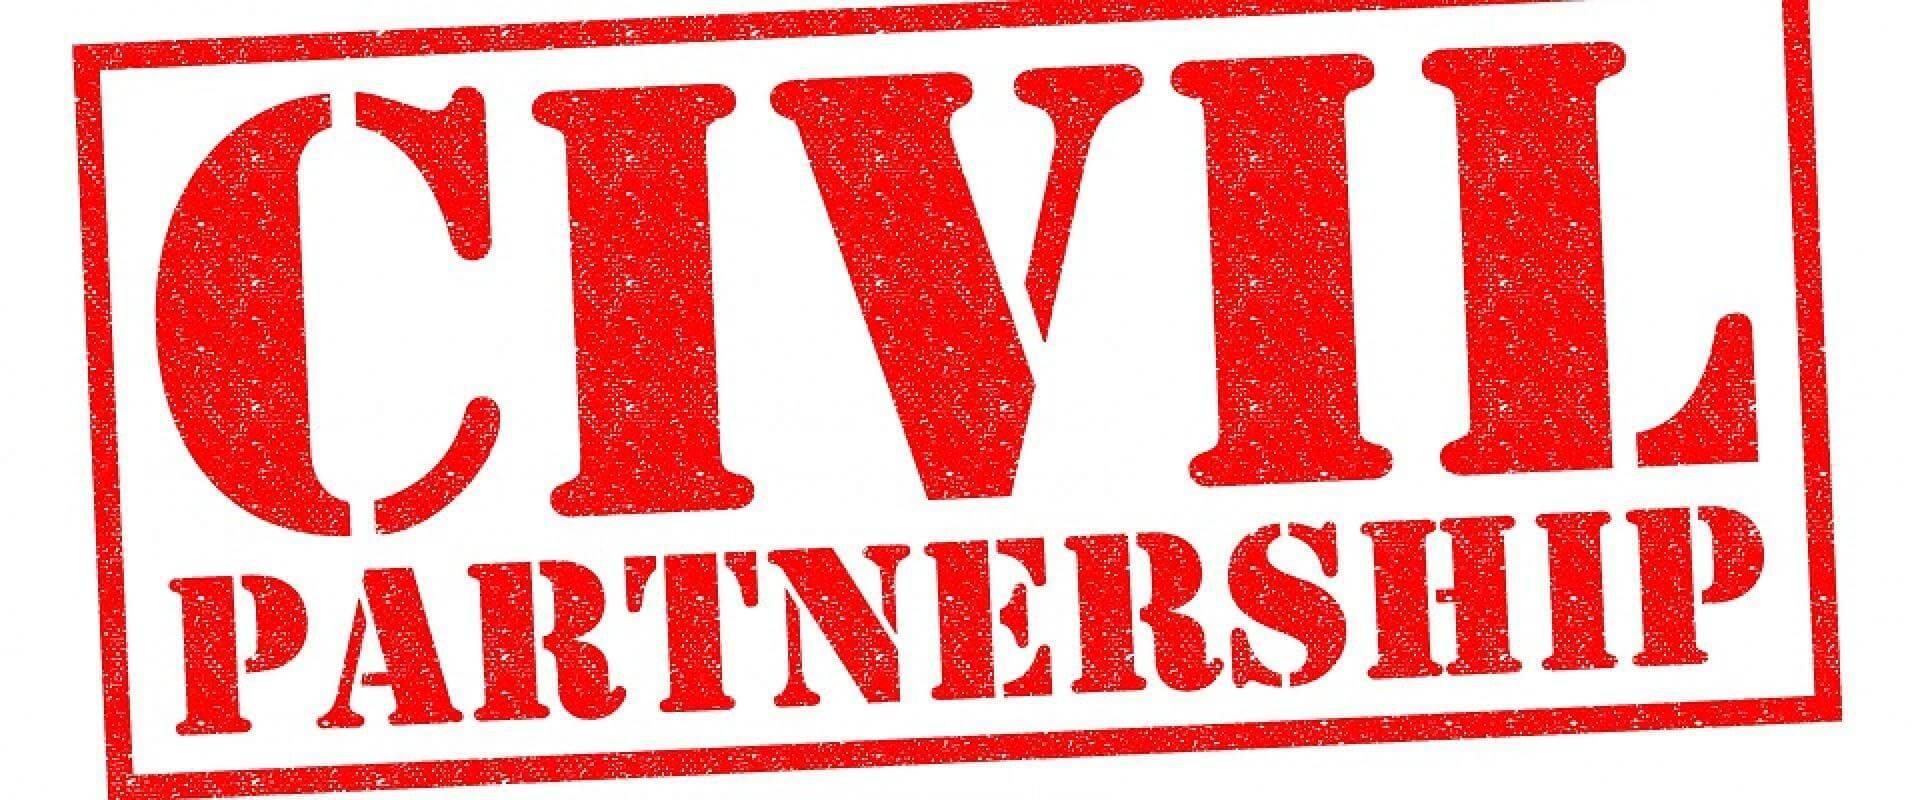 civil-partnerships